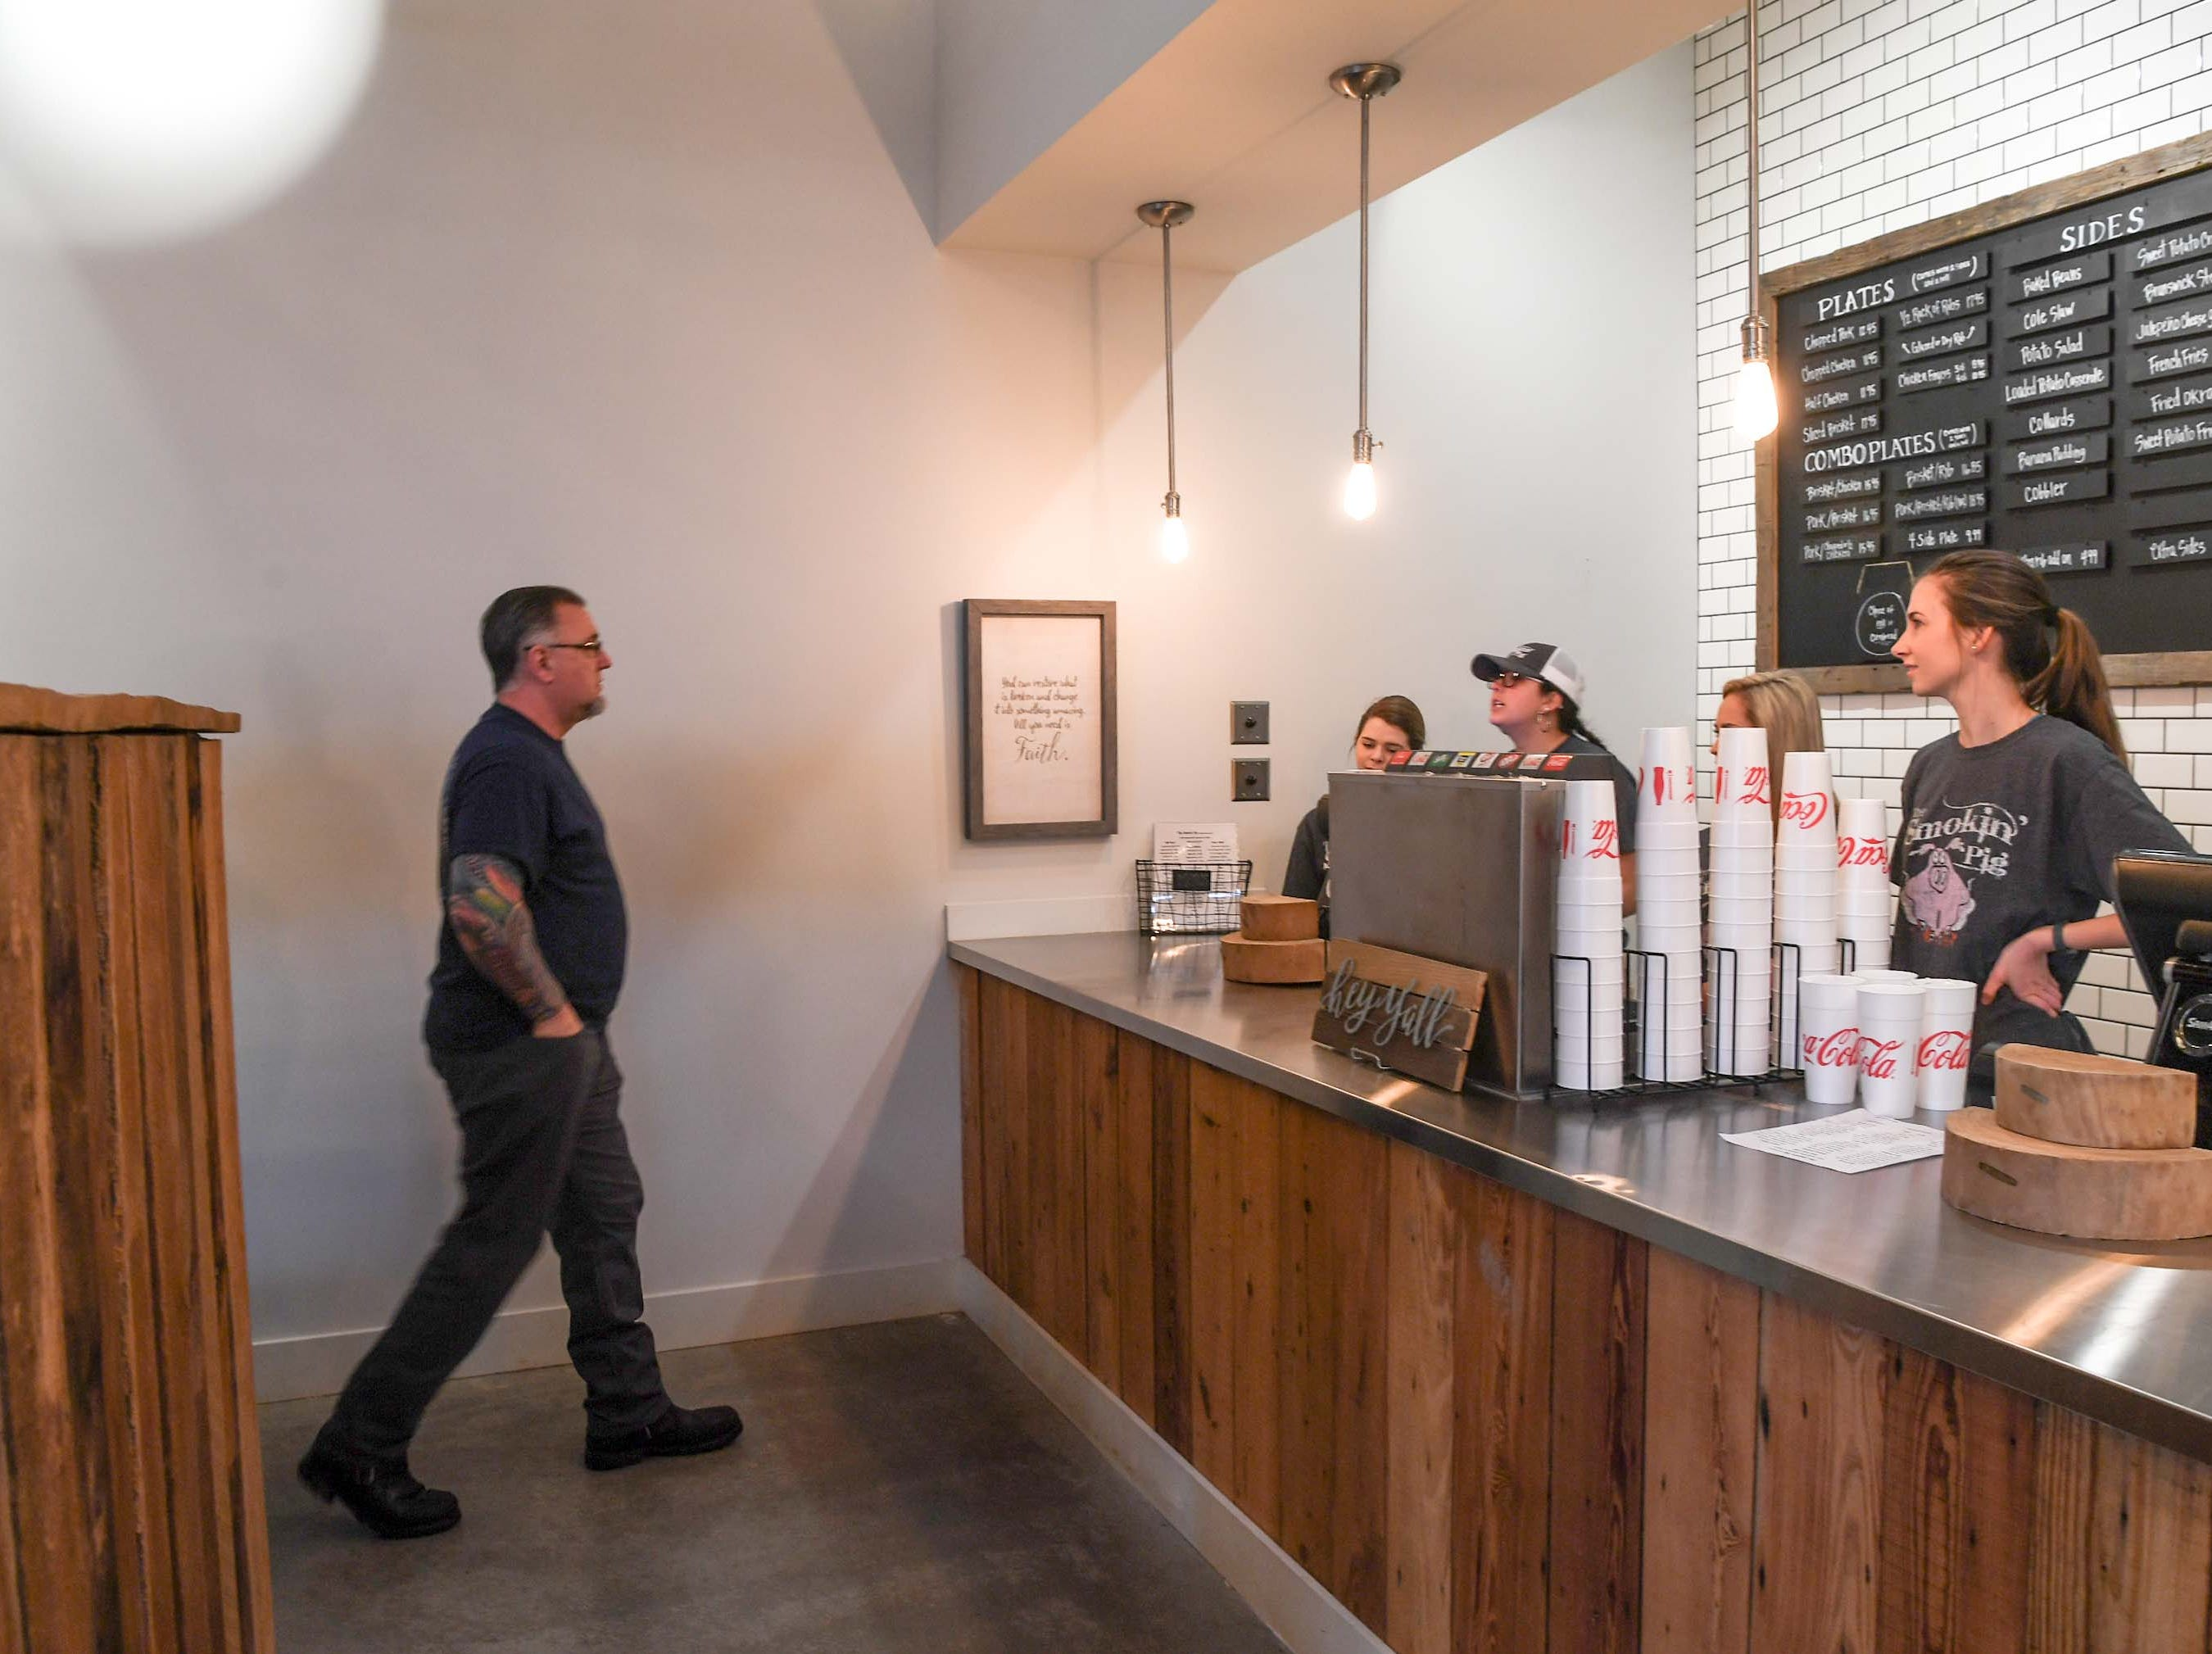 Scott Ramey of Anderson walks up to the counter, the first in line on opening day of Smokin' Pig on Evergreen Road in Anderson Thursday, February 28, 2019. The new location is the fourth, with locations in Pendleton, Williamston, and Easley.